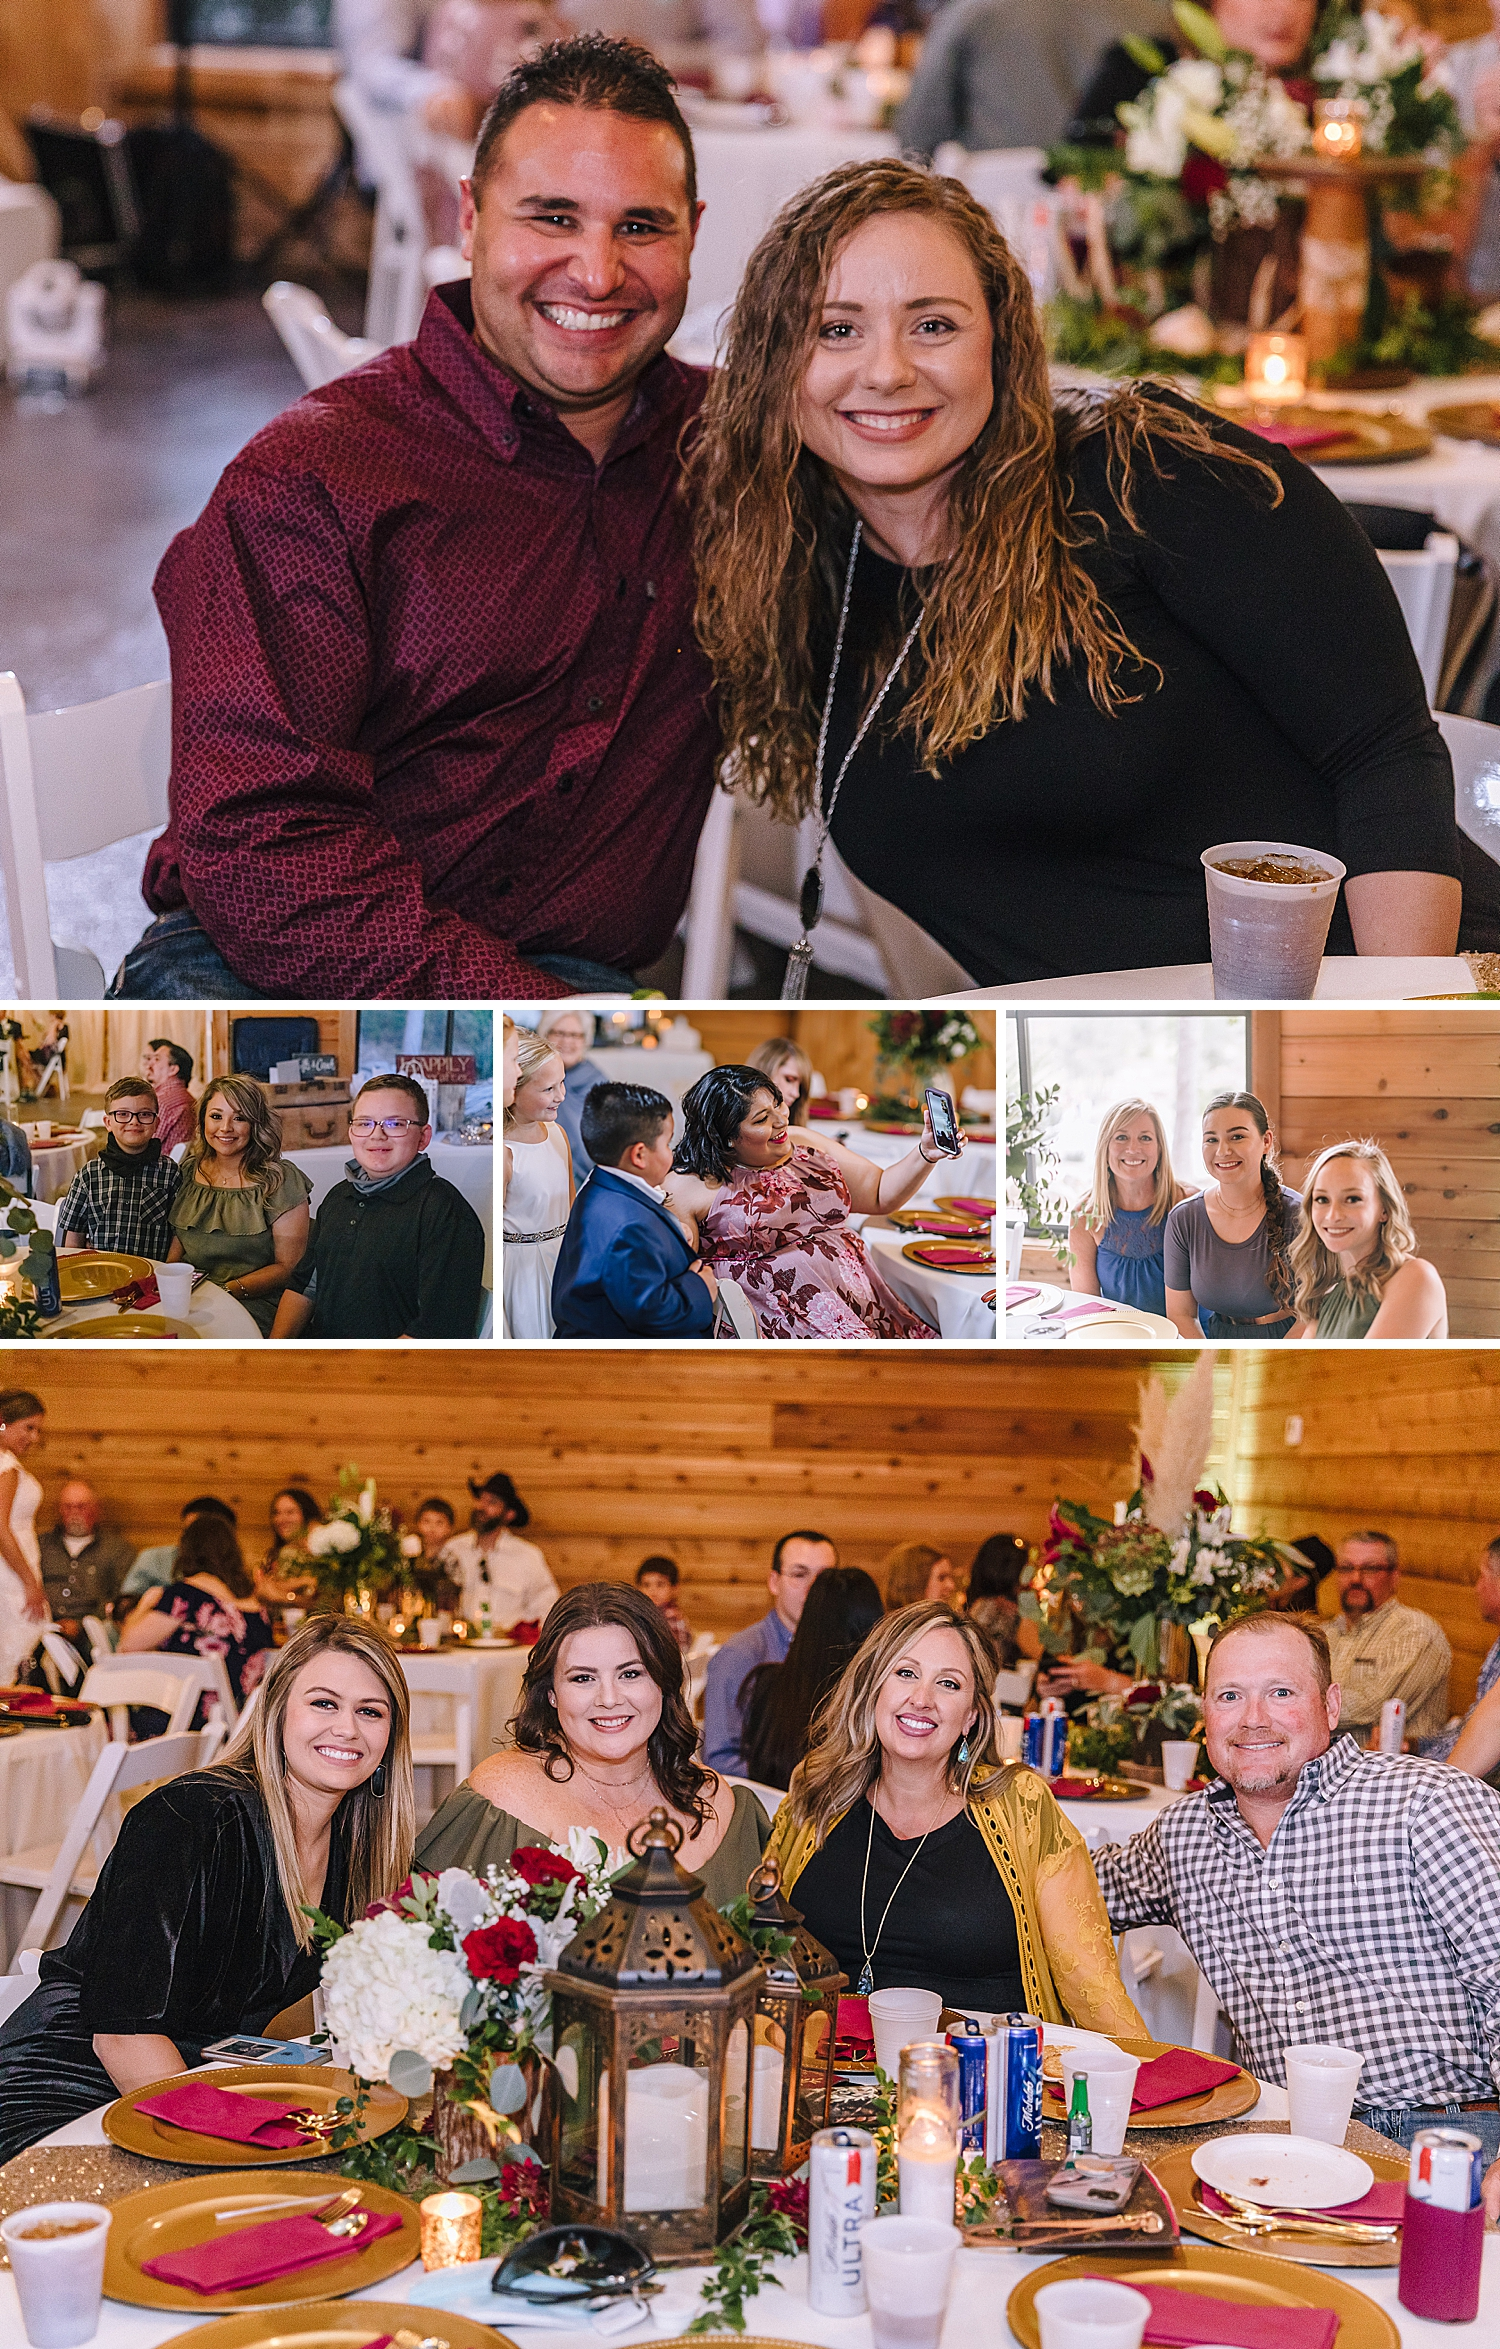 Geronimo-Oaks-Wedding-Venue-Seguin-Texas-Elegant-Navy-Burgundy-Wedding-Carly-Barton-Photography_0062.jpg